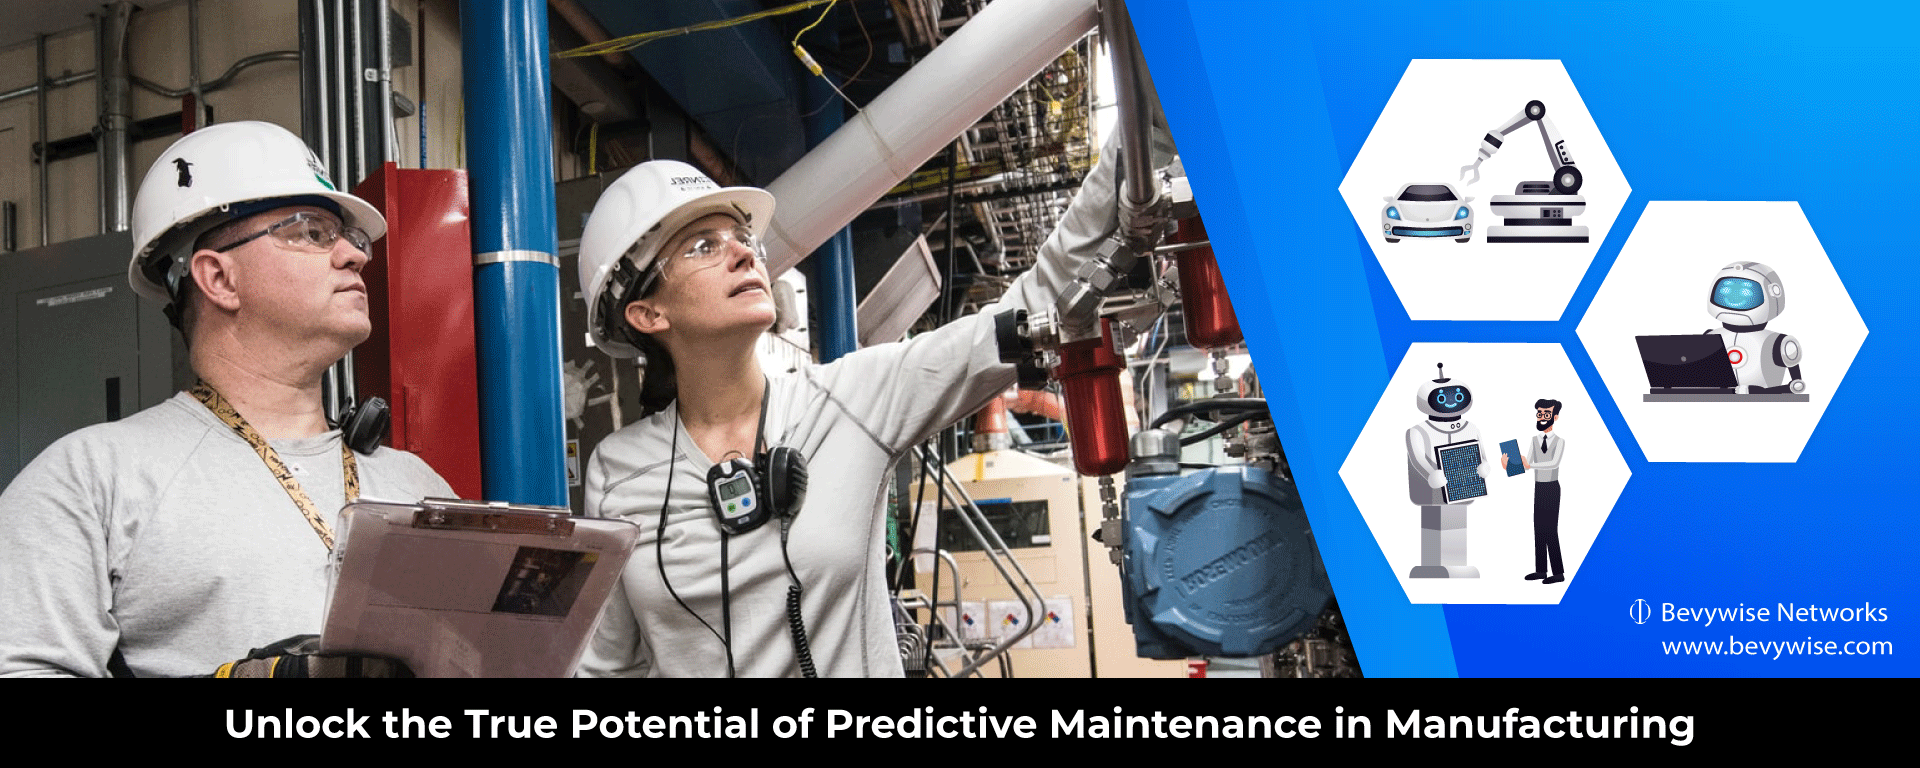 Predictive Maintenance in manufacturing